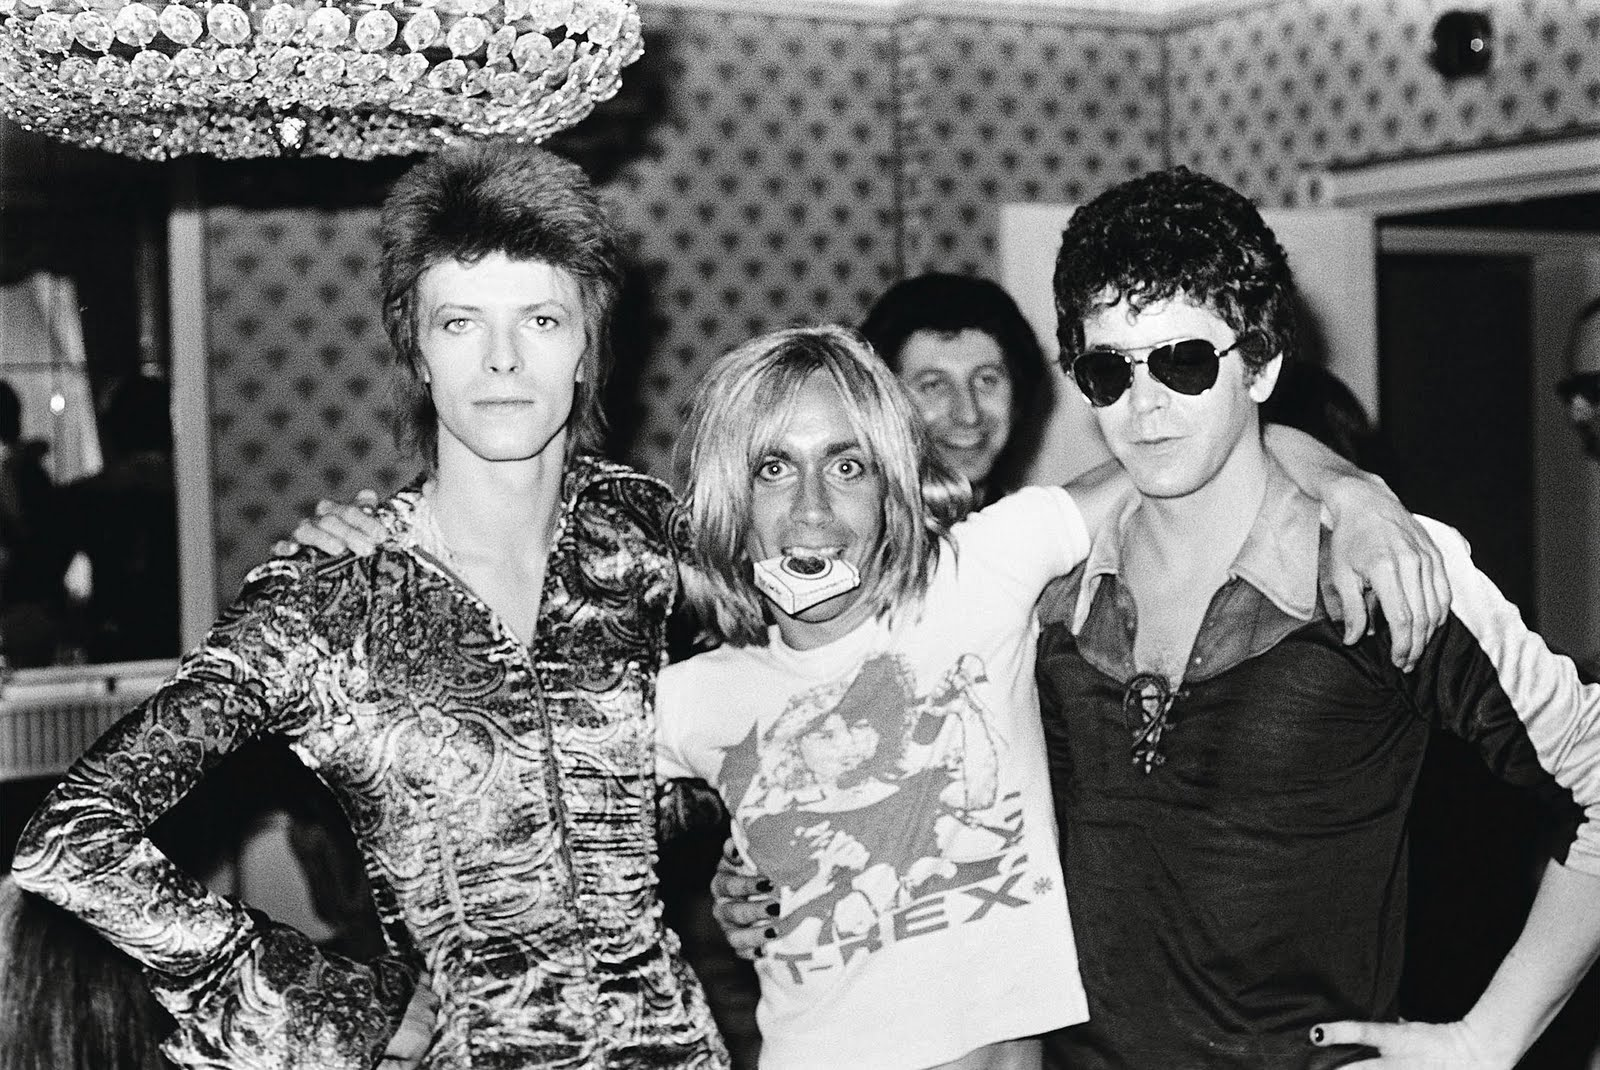 David Bowie, Iggy Pop e Lou Reed festeggiano ad un party londinese nei primi anni '70. cult stories cultstories cinema cult story cultstory art culture music ipse dixit aneddoti citazioni frasi famose aforismi immagini foto personaggi cultura musica storie facts fatti celebrità vip cult spettacoli live performance concerto photo photography celebrity giornalismo scrittura libri genio pop icon attore cantante solista pittrice scultore attrice star diva sex symbol mito David Bowie, Iggy Pop, Lou Reed cult music musique musica party cultstories party city party city coupons party city hours party dresses party supplies partynextdoor party city costumes party down south party in the usa party bus party games party all night party america party animal party appetizers party and bullshit party all the time party all night song party all night mp3 party accessories party all night lyrics a party apart a party place a party without me a party center a party down at the square a party song lyrics a party pleasing rental a party in the usa a party that invests in common stock a party shop party bus rental party bags party boy party bus hire party bag fillers party balloons party bazaar party buses party box b party city /b b party words b party costume ideas b party costumes b themed party ideas b party fancy dress ideas b party dress up b party the store b-party in loo roo b-party schneeberg party city balloons party city canada party city coupons 2015 party city costumes for girls party city jobs party city wigs c party theme c party rentals c party ideas costumes c party fancy dress c party tables c party dress up c party words partylite.c party cloud party c n party delights party decorations party down party dresses for women party down south 2 party dresses uk party depot party down south cast d party rental d party melaka d party costume ideas d party theme d party done d party nails d party paradise melaka d party event services d party place kennedale d party store oakley mi party express party expert party emoji party entertainment party entertainment ideas party essentials party equipment rental party emoticon party events party eye makeup e party invites e party jumpers e party pills e party ideas e party city e party on host e party pills review e party favors e party invites uk e party invitations uk free party food party favors party fair party favor ideas party favours party favors tinashe party fowl party food for kids party finger foods party fiesta f party ideas f party costume ideas f party words f party fancy dress f party dress up ideas f party kanpur f party themes f party theme ideas f party music f party goa party games for adults party galaxy party games for kids party gif party girls party gowns party game ideas party girls generation party giant g party costumes g party palace g party drug g party theme g party rentals san antonio g's party rentals g party theme ideas g+ party mode g party creations g party dress up ideas party hard party hat party hairstyles party hire party hard gif party house party hairstyles for long hair party hardy party hunterz party halls h party boy h party fancy dress ideas h themed party ideas h party fancy dress h party dress up h party words h party rentals h party outfits h party rock anthem party h&m party ideas party invitations party in the usa lyrics party in the park party images party in a box party ideas for kids party in the cia party in the usa chords i party like a rockstar i party costumes i party coupons i party near me i party boston i party with jay gatsby i party like a rockstar lyrics iparty with victorious i party hard i party manchester nh party jokes party jumpers party jumpsuits party jungle party junction party jackets party jam party jenga party juice party jay j party ideas j party theme j party town laredo tx j party costume ideas j party rentals j party rentals san antonio j party town laredo j party rentals ontario ca j-party balloon decoration j's party store dearborn party kingdom party karni hai party king party karni hai song download party kingdom doha party kingdom chino party kits party karni hai lyrics party king costumes party kitchen k party roma k party ideas k party costume ideas k party drug k party melbourne k party shanghai k party rental k party theme k party costumes k party world party lights party line partylite party like a rockstar party land party lyrics party line number party list party lyrics snsd party lashes l party city l party theme l party costumes l party theme ideas l party brussels l party dress up l party fancy dress l party designs l party rock l party rock anthem party music party monster party meme party makeup party mania party mart party music 2015 party mix party movies party masks m party theme m party city m party fancy dress m party dress up ideas m partybets m.party city coupons m party dress up m party matalan m.party city hours m party theme costumes party names party needs party night party nibbles party napkins party nails party name ideas party net party noise makers n party montreal n party ideas n party costumes n party costume ideas n partyka n party theme n'party 'n bullshit lyrics n party dress up n party lyrics party n play party of five party on party outfits party of five cast party on my mind party on garth party outfit ideas party of 5 party on rentals party on my mind mp3 o party uchicago o party nalla party thaan o party nalla party thaan lyrics o party of lenin o party plus martinsburg wv o party costumes party on night party o'clock party o'clock lyrics party o'clock mp3 party pieces party pooper party packagers party poker party place party planner party people party poppers party plus party pictures p party costumes p party city p party themes p party invitations p party fancy dress ideas p party food ideas p party fancy dress p party food p party palace p party ideas needed party quotes party questions party quotes tumblr party quiz party queen party quirks party queen makeup party queen brushes party quiz questions party quirks whose line is it anyway q party westerlo q party oostende q party australia q party lommel 2015 q party torhout q party mopertingen 2015 q party zele q party mopertingen q party broechem q party vlezenbeek party rentals party rock anthem party room party rentals near me party recipes party rings party reflections party rockers party rock anthem mp3 party rentals nj r partykit r party ideas r party ctree r party ctree example r partykit plot r party example r party decision tree r party costumes r party costume ideas r party themes party songs party store party songs 2015 party shop party store near me party stuff party source party synonym party snacks s party ideas s party words s party concept in siebel s party fancy dress s party themes s party costumes ideas s party suggestions s_party_per s_party in siebel s_party table in siebel party themes party time party tents party tents for sale party tops party time rentals party tent rentals party tricks party town party themes for adults t party yoga pants t party leggings t party clothes t party tops t party ideas t party t shirt t party fringe yoga pants t party taylor swift 1989 t party usa t party meaning party up party usa party up lyrics party universe party unlimited party underway party urban dictionary party usa lyrics party usa las vegas party updos u party v drive u party colombia u party tickets u party gallery u party rhenish u party school ü party basel ü party recklinghausen ü party hamburg ü party zürich party venues party venues for kids party van party venues london party vector party video party vezina party venues cape town party venues nyc v party ideas v party costume ideas v party bus v party island v party theme v party zusamaltheim v party 2012 v+ party sponsoring v-party 2013 v party creations party wear party world party wall party warehouse party wear dresses party wall act party works party wear sarees party whip party wall agreement w party wear kurtis w party costume ideas w party hong kong w party d w party planner w themed party w party barcelona w party subotica w partyturze w partyzantce u rysia party x party lyrics party xpress party xtreme laser tag party x party vocaloid party x party english lyrics party x party mp3 x party divorce x party meaning x party film x party notice x party hearing x party trailer x party divorce decree x party divorce order x party court order x party erbil parti yorkie party yacht party youtube party your body party yard signs party yaara party york party yacht for sale party yachts for rent party yacht nyc y party ideas y party rock partysu.y party-y-seal grosmont y knot party rentals big y party pizza price big y party platters big y party pizza cost super y party supplies pokemon y party party zone party zone dubai party zone usa party zone pinball party zone wichita ks party zone falmouth party zone ip party zone dubai mall party zone aaa music party zone maui z party hall z party bus z party germany z partyzanta z party fitness z party store z partyzanta co to znaczy z party rentals z party bus victoria tx z's party store grand rapids party 0 zante party 007 party 0f five party 0n my mind lyrics party 007 theme party 030 party 02.10 köln party 02.10 berlin party 02.10 düsseldorf party 08 party 0 partyautoshare 0 party 0 clock size 0 party dresses triple 0 party tosh.0 party laugh sub 0 party tosh.0 party foul super 0 party party 101 party 105.3 party 101 audio push party 14 party 101 lyrics party 1984 party 100.9 party 1999 party 100 pics party 10 1 party system 1 party school 1 party system definition 1 party consent 1 party school 2015 1 party rentals 1 party anthem 1 party hat 1 party consent state 1 party logistics party 2015 party 21 party 2000 party 27 party 2015 songs party 2015 playlist party 2 go party 21 bratislava party 22 party 2 u 2 party system 2 party check 2 party system definition 2 party consent states 2 party check cashing 2 party states 2 party system apush 2 party system failure 2 party insurance check 2 party system history party 31 party 360 party 33 party 365 party 3 hamid asghari party 3 year old party 31 catalog party 360 jaipur party 318 party 30 ans infopresse 3 party logistics 3 party dmv 3 party system 3 party check 3 party insurance 3 party contract 3 party agreement 3 party mvd 3 party hairstyles 3 party logistics companies party411 party 4 less party 4 me party 4 you party 4 da low party 4u party 44 party 4 less salem nh party 400 watts fog machine party 4 hire 4 party logistics 4 party model 4 party system 4 party model visa 4 party agreement 4 party leaders 4 party bus 4 party logistics provider 4 party talks 4 party payment model party 5 hamid asghari party 50 birthday party 50 cent party 50th birthday decorations party 5 year old boy party 51 party 5 hours party 5 letters party 5 power music party 5 year old 5 party eras 5 party list 5 party logistics 5 party systems 5 party tricks 5 party list philippines 5 party functions 5 parties 5 party eras in texas 5 party system in america party 6 year old party 6 beer party 6 year old boy party 626 party 60's theme party 60th birthday ideas party 60 years old party 66 handshakes party 60 party 60th 6 party talks 6 party talks north korea 6 party system 6 party eras 6 party talks timeline party 6 hamid asghari party 6 year old ideas party 6 year girl size 6 party dresses party 7 beer party 7 images party 7 movie party 7 can party 7 2000 party 7 anime party 7 year old boy party 732 party 700 watts fog machine party 7 big boss man 7 party tricks with liquid nitrogen 7 partyservice dortmund party 7 beer can party 7 beer can wiki party 7 bitter party 7 year old 7 birthday party ideas ginbot 7 party party 80s party 80s songs party 88 party 802 lyrics party 8tracks party 8 year old boy party 888 jakarta party 801 party 85 party 802 8 party rental tampa 8tracks party party 8 year old wizardry 8 party guide wizardry 8 party creation 8 flavahz party rock anthem size 8 party dresses wizardry 8 party creation guide 8 birthday party ideas party 934 party 93.1 party 94 party 93.1 miami party 911 party 9gag party 90s party 95 party 95.7 party 97.1 party 9 mario party 9 year old boy party 9 year old cloud 9 party mario 9 party wii game cloud 9 party cape town 9 birthday party ideas mario 9 party wii mario 9 party youtube pop 9 party party 101 mp3 party 101 audio push lyrics party 103 party 101 audio push download 10 party songs 10 party tricks 10 party games 10 party schools 10 party commandments 10 party colleges 10 party ideas 10 party moments only sober 10 partylist 10 party games for adults